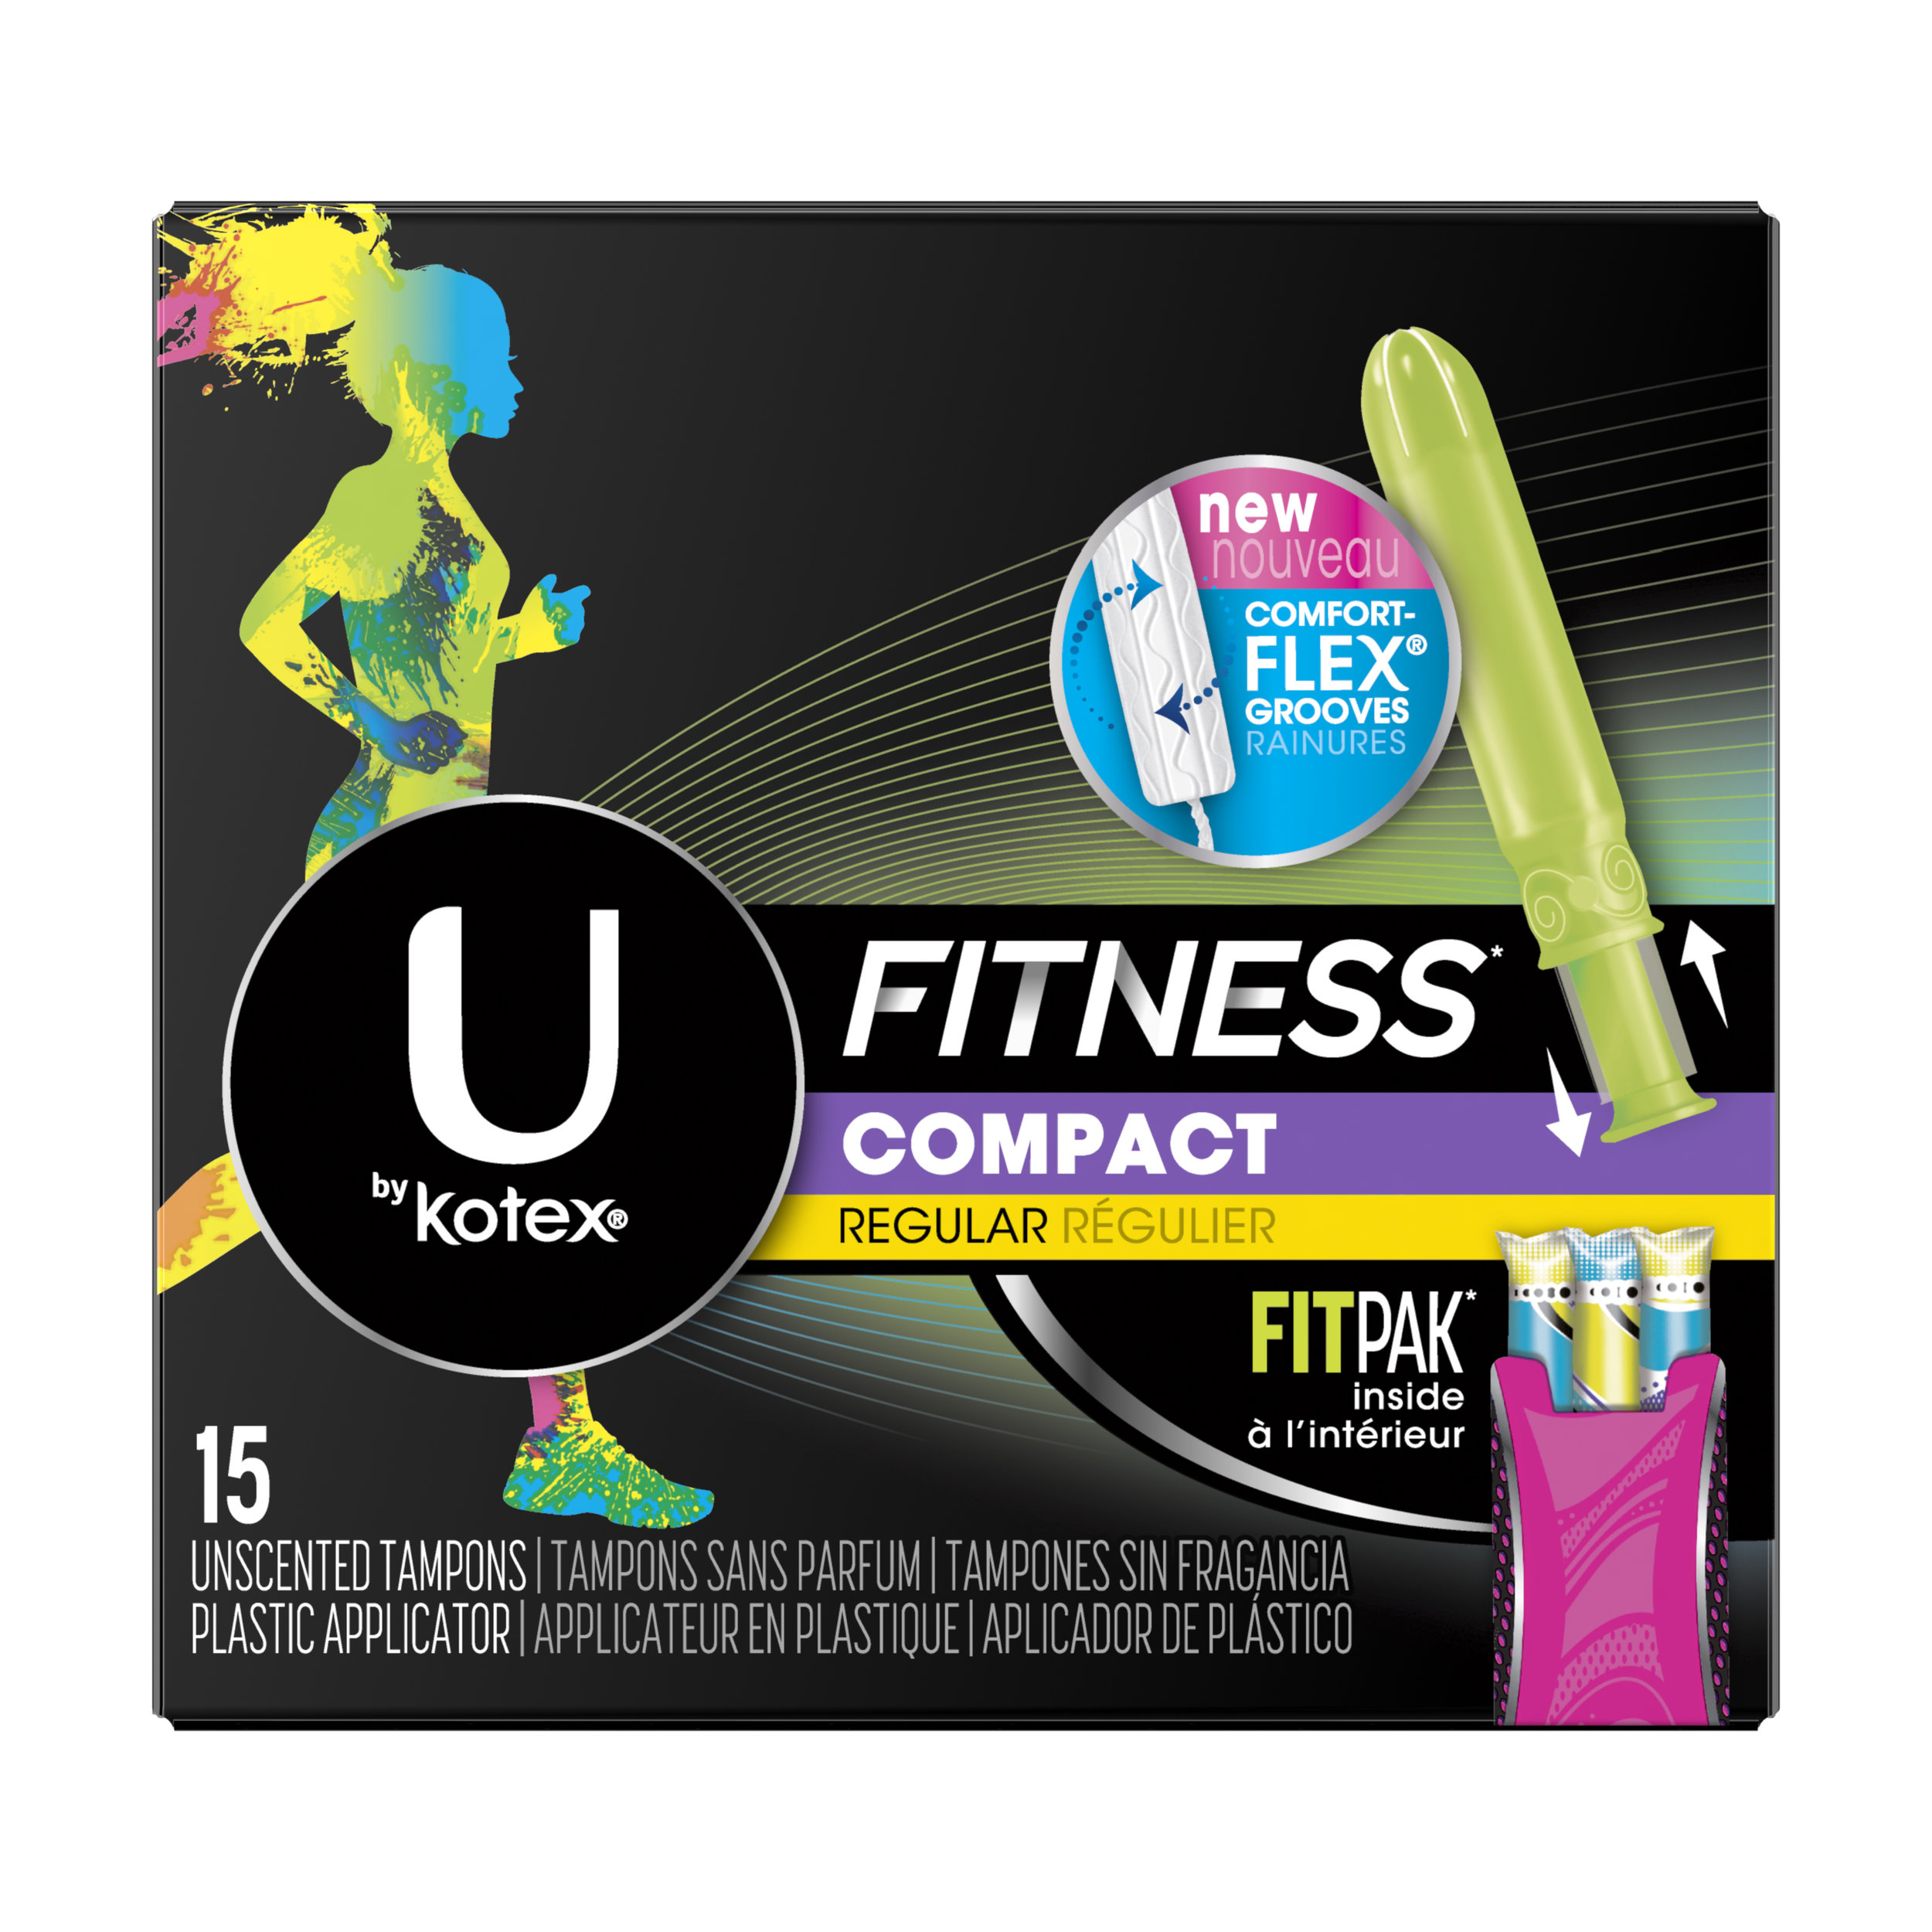 U by Kotex Fitness Tampons with FITPAK